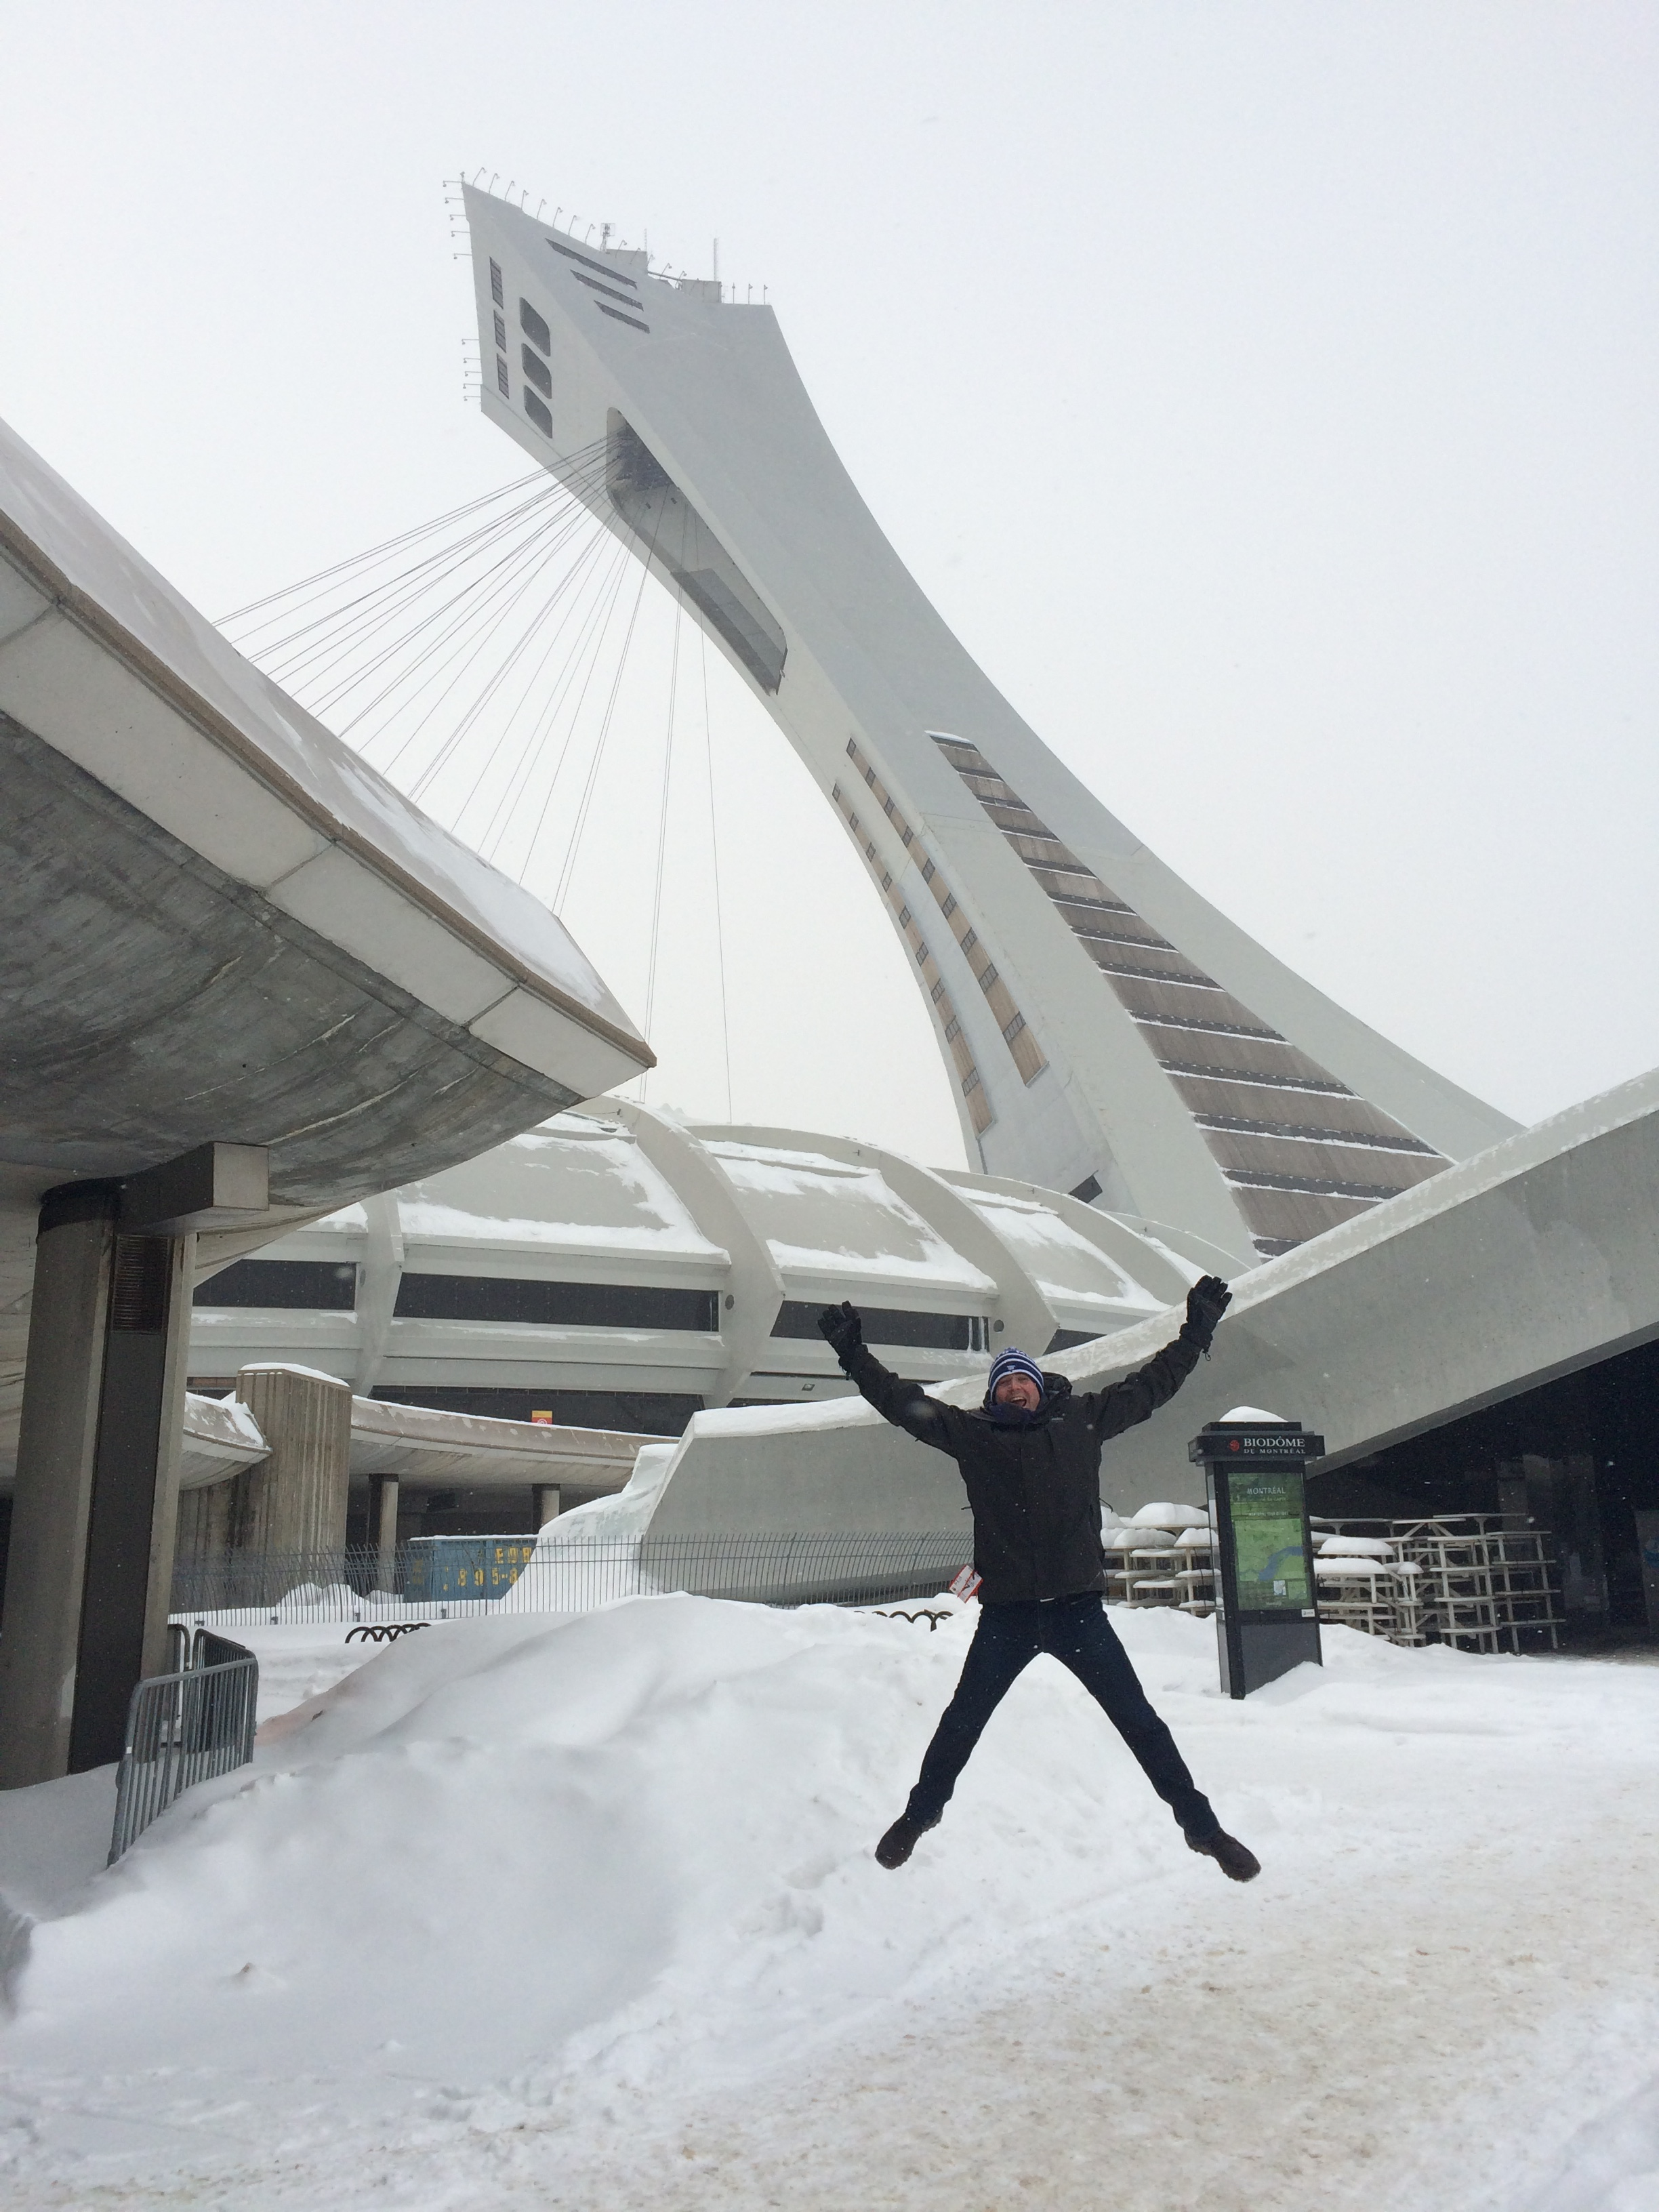 Andrew and the stade olympique